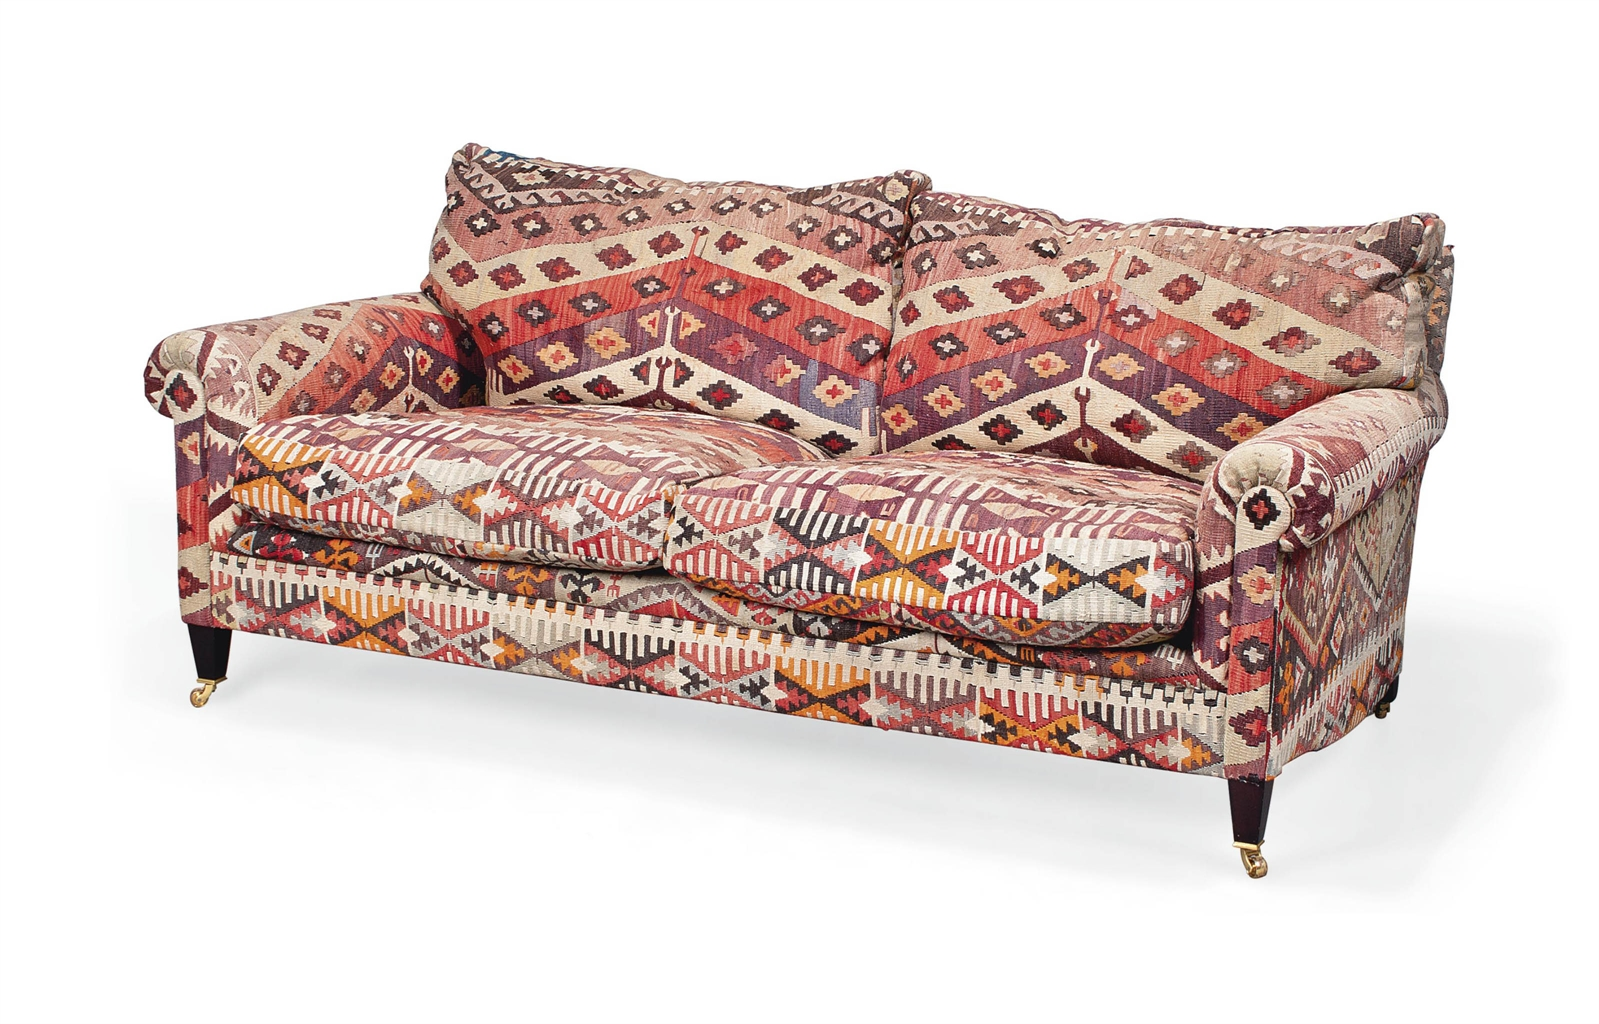 andrew martin rochester sofa sofaworks empire armchair a george smith kilim upholstered of recent